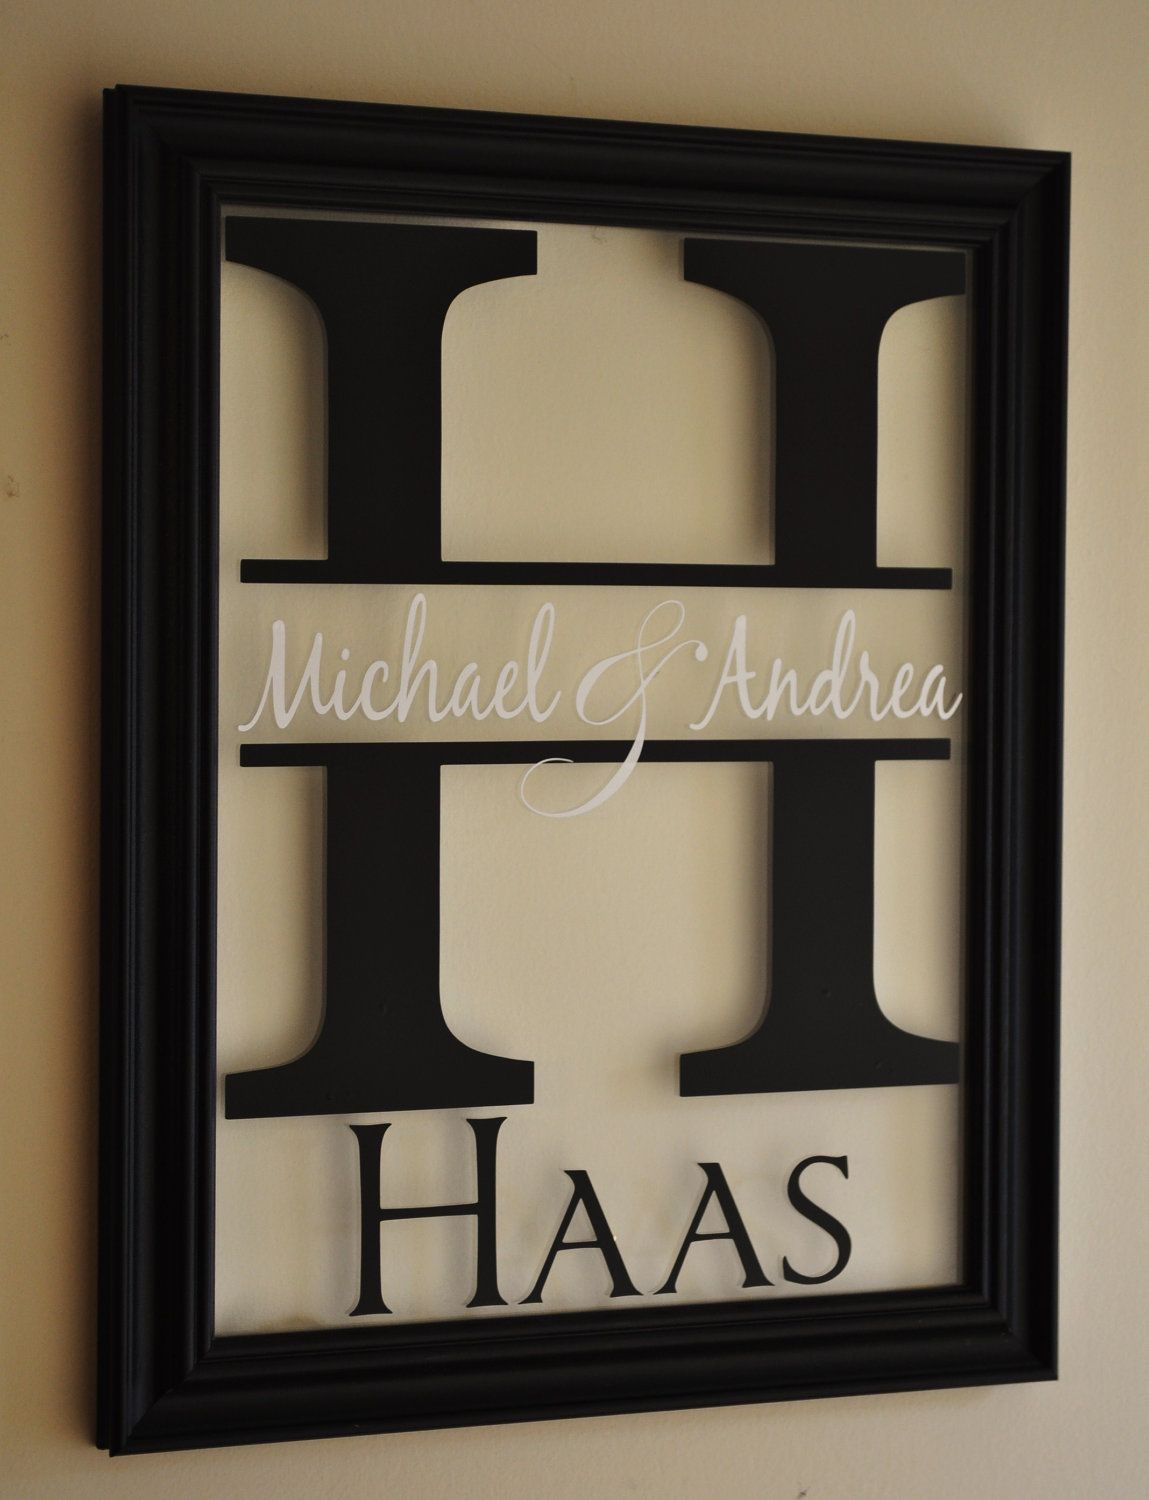 Personalized Family Name Sign Picture Frame Wall Sign 13x16 overall ...